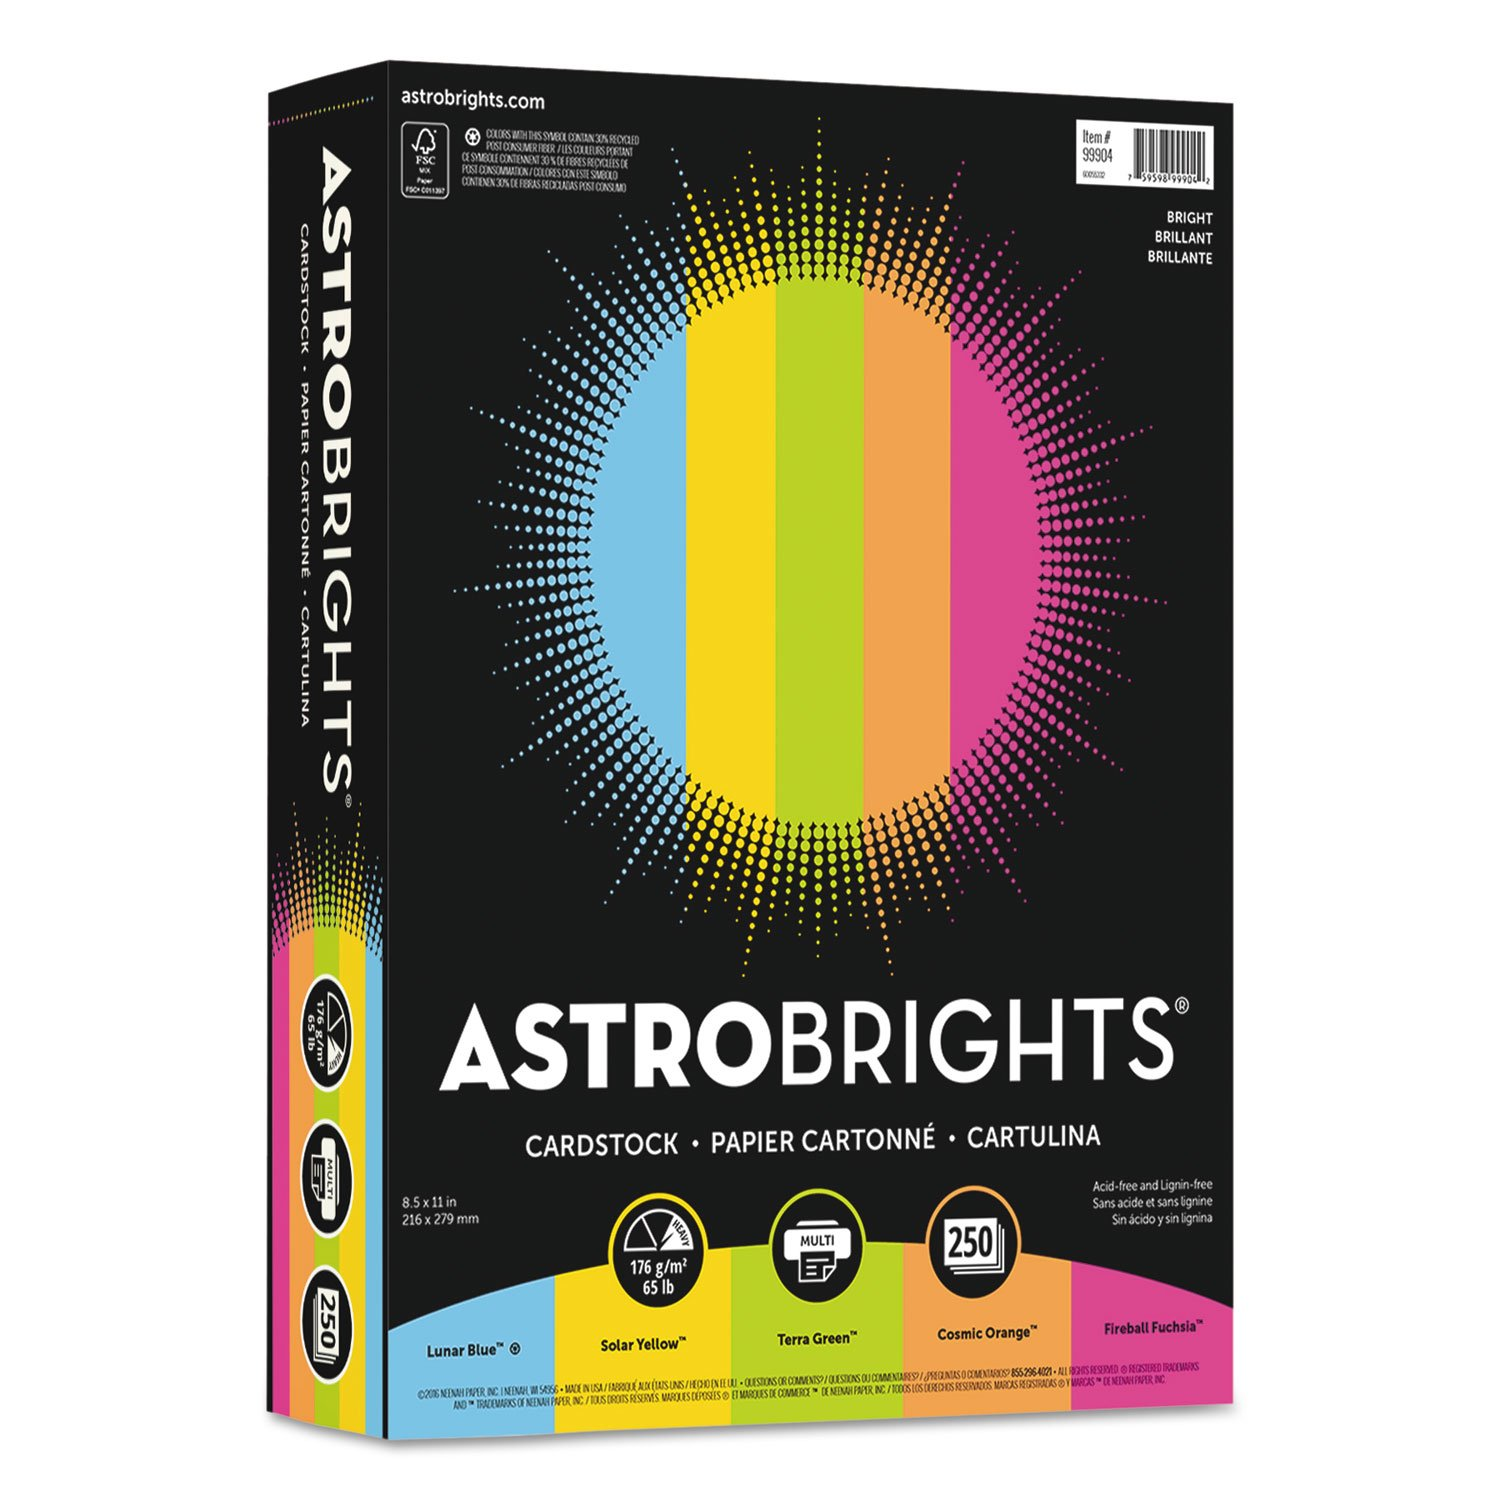 Astrobrights 99904 Color Cardstock -Inch Bright-Inch Assortment, 8 1/2 x 11, 5 Colors, 65lb, 250 Sheets